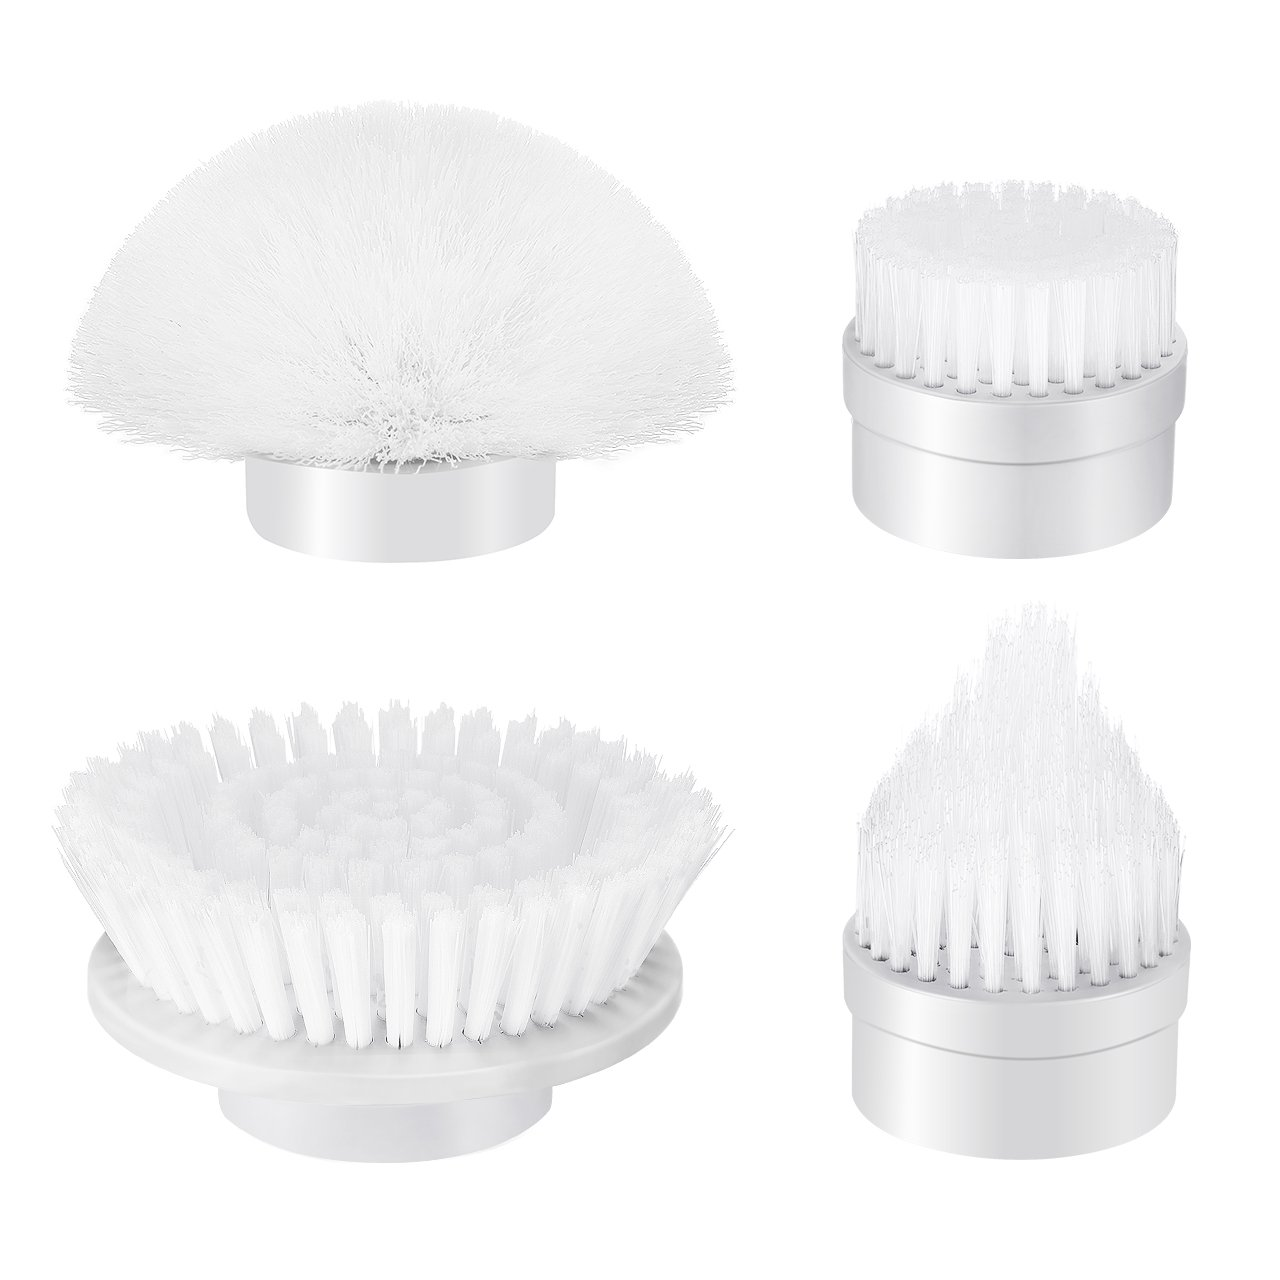 4pcs Power Spin Scrubber Replacement Brush Heads, ELLESYE Electric Cordless Tub and Tile Scrubber Head Brushes for Bathroom, Shower, Floor, Wall and Kitchen